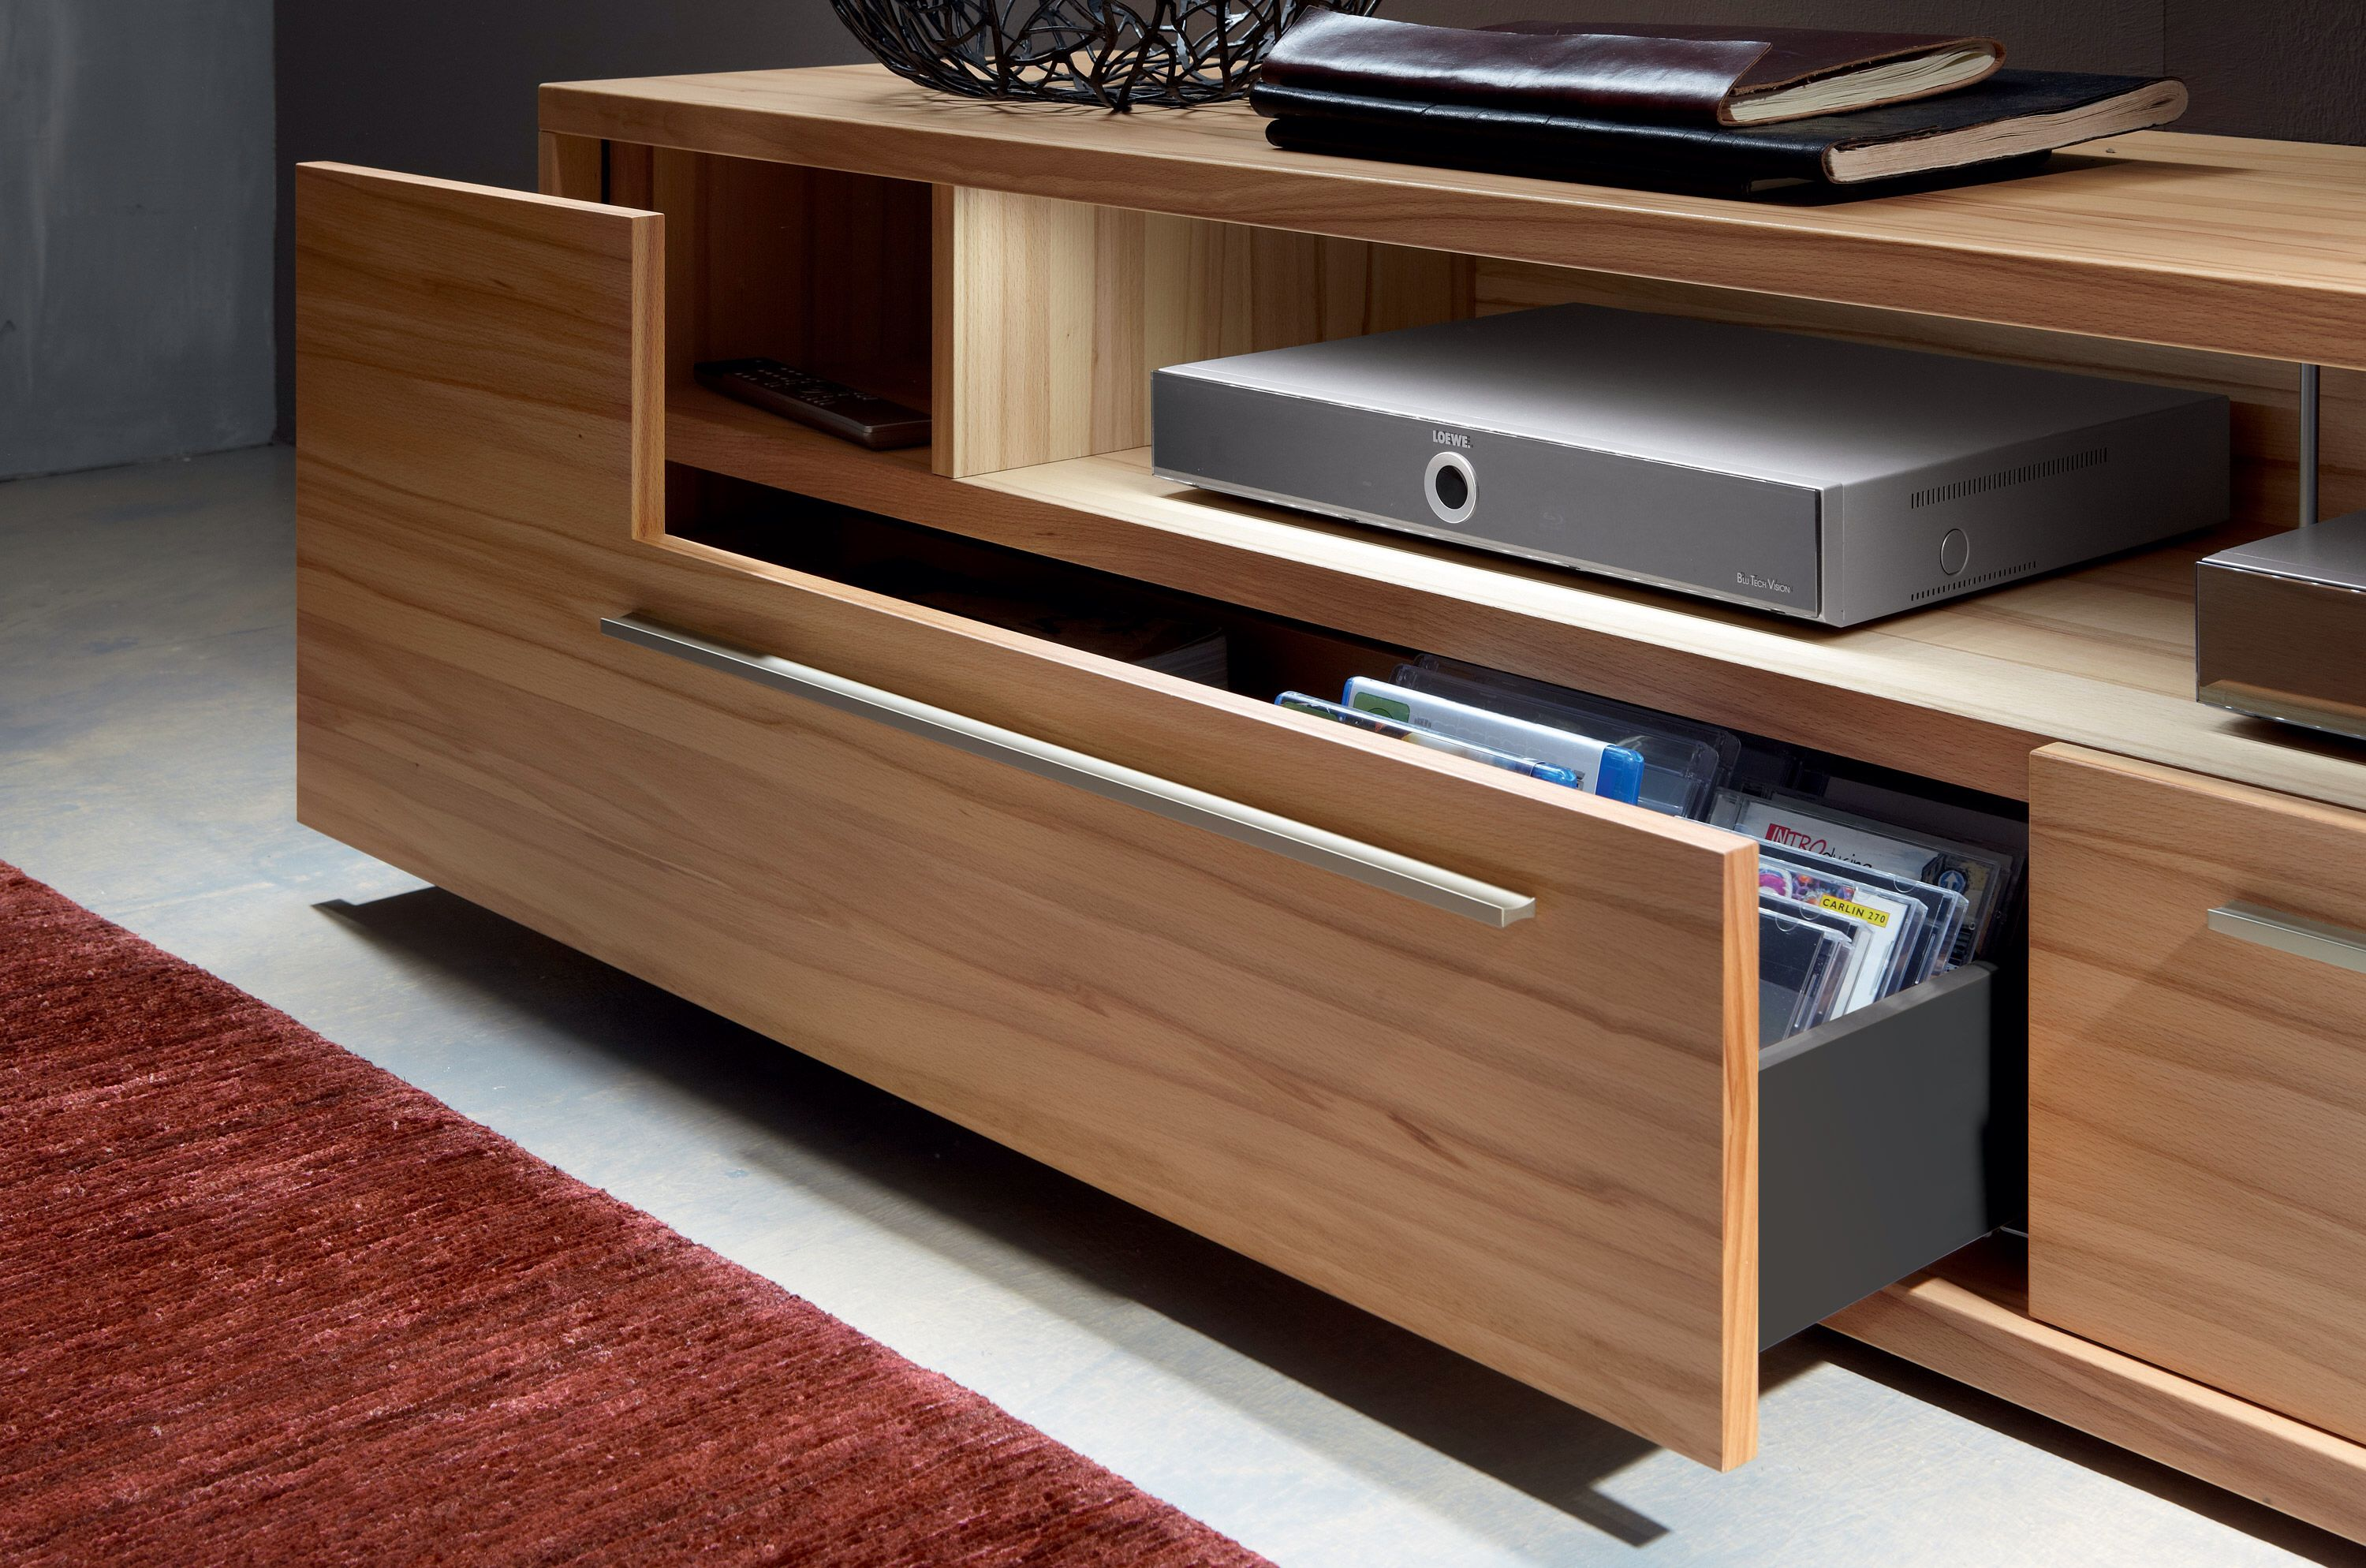 h lsta mento lade detail h lsta pinterest shelving and storage ideas. Black Bedroom Furniture Sets. Home Design Ideas